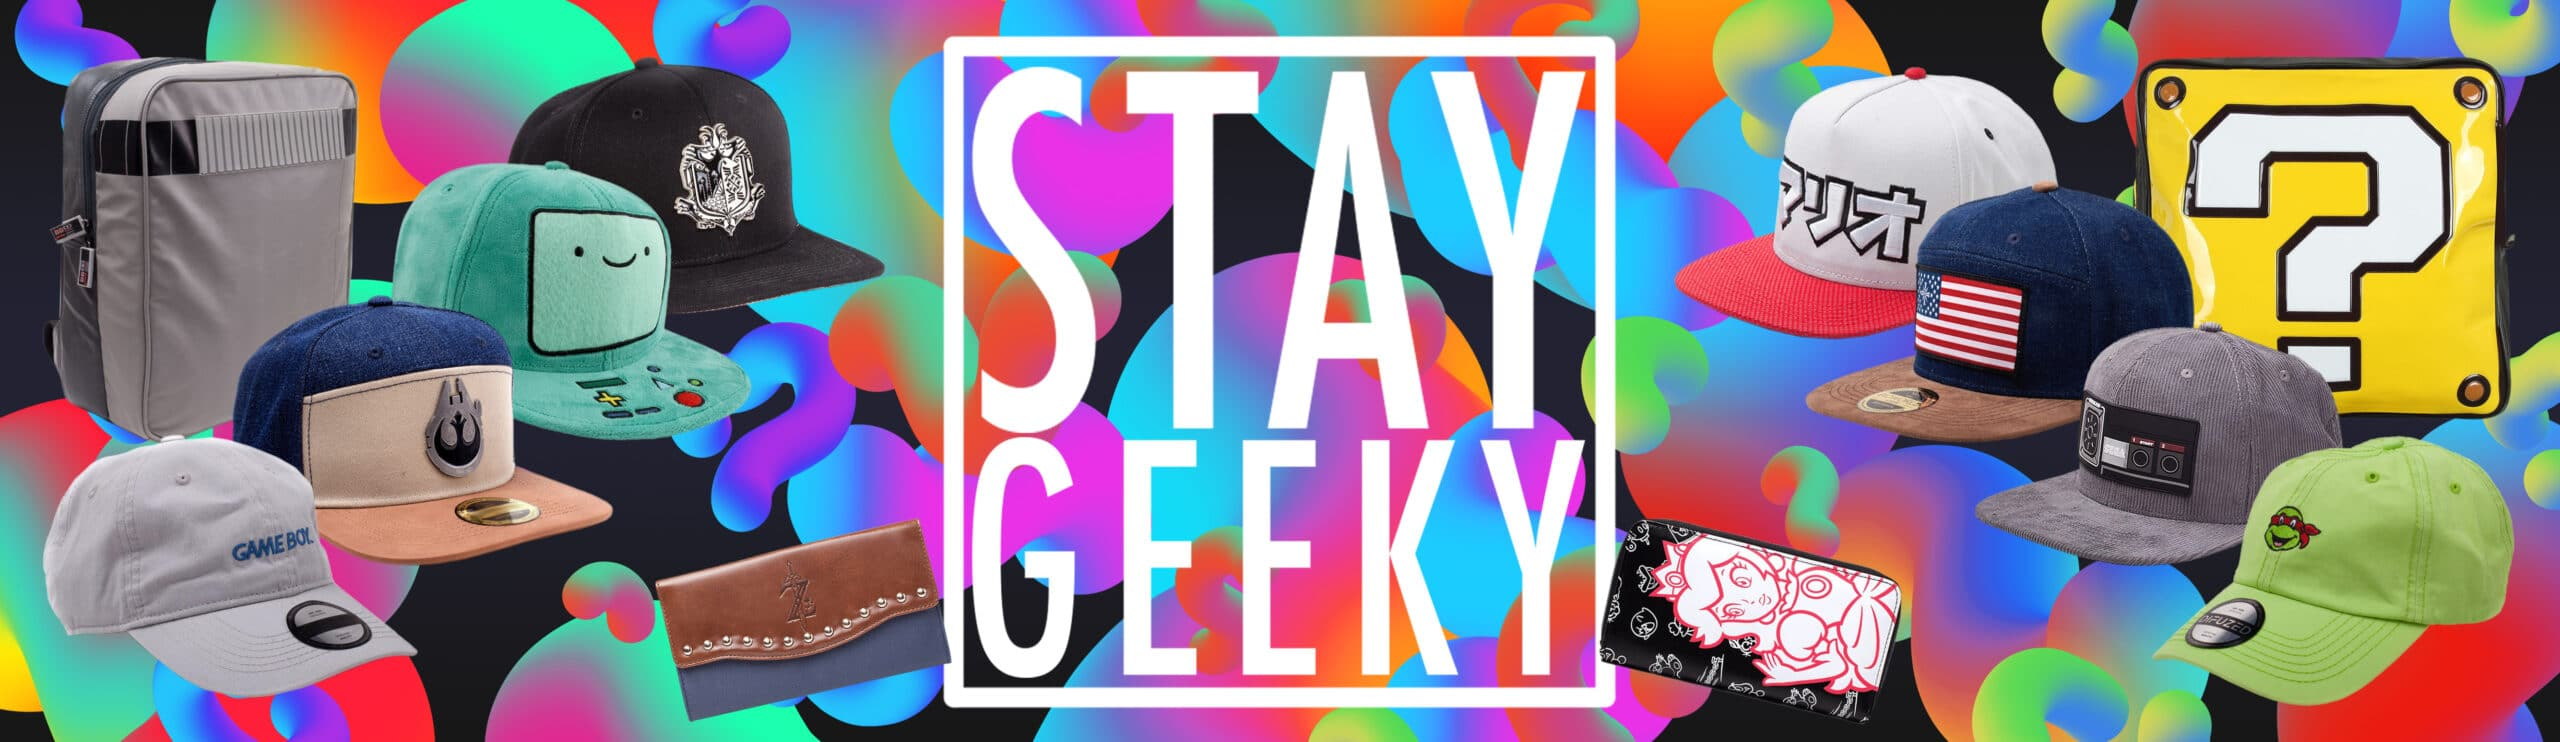 Summer Stock Stay Geeky Banner